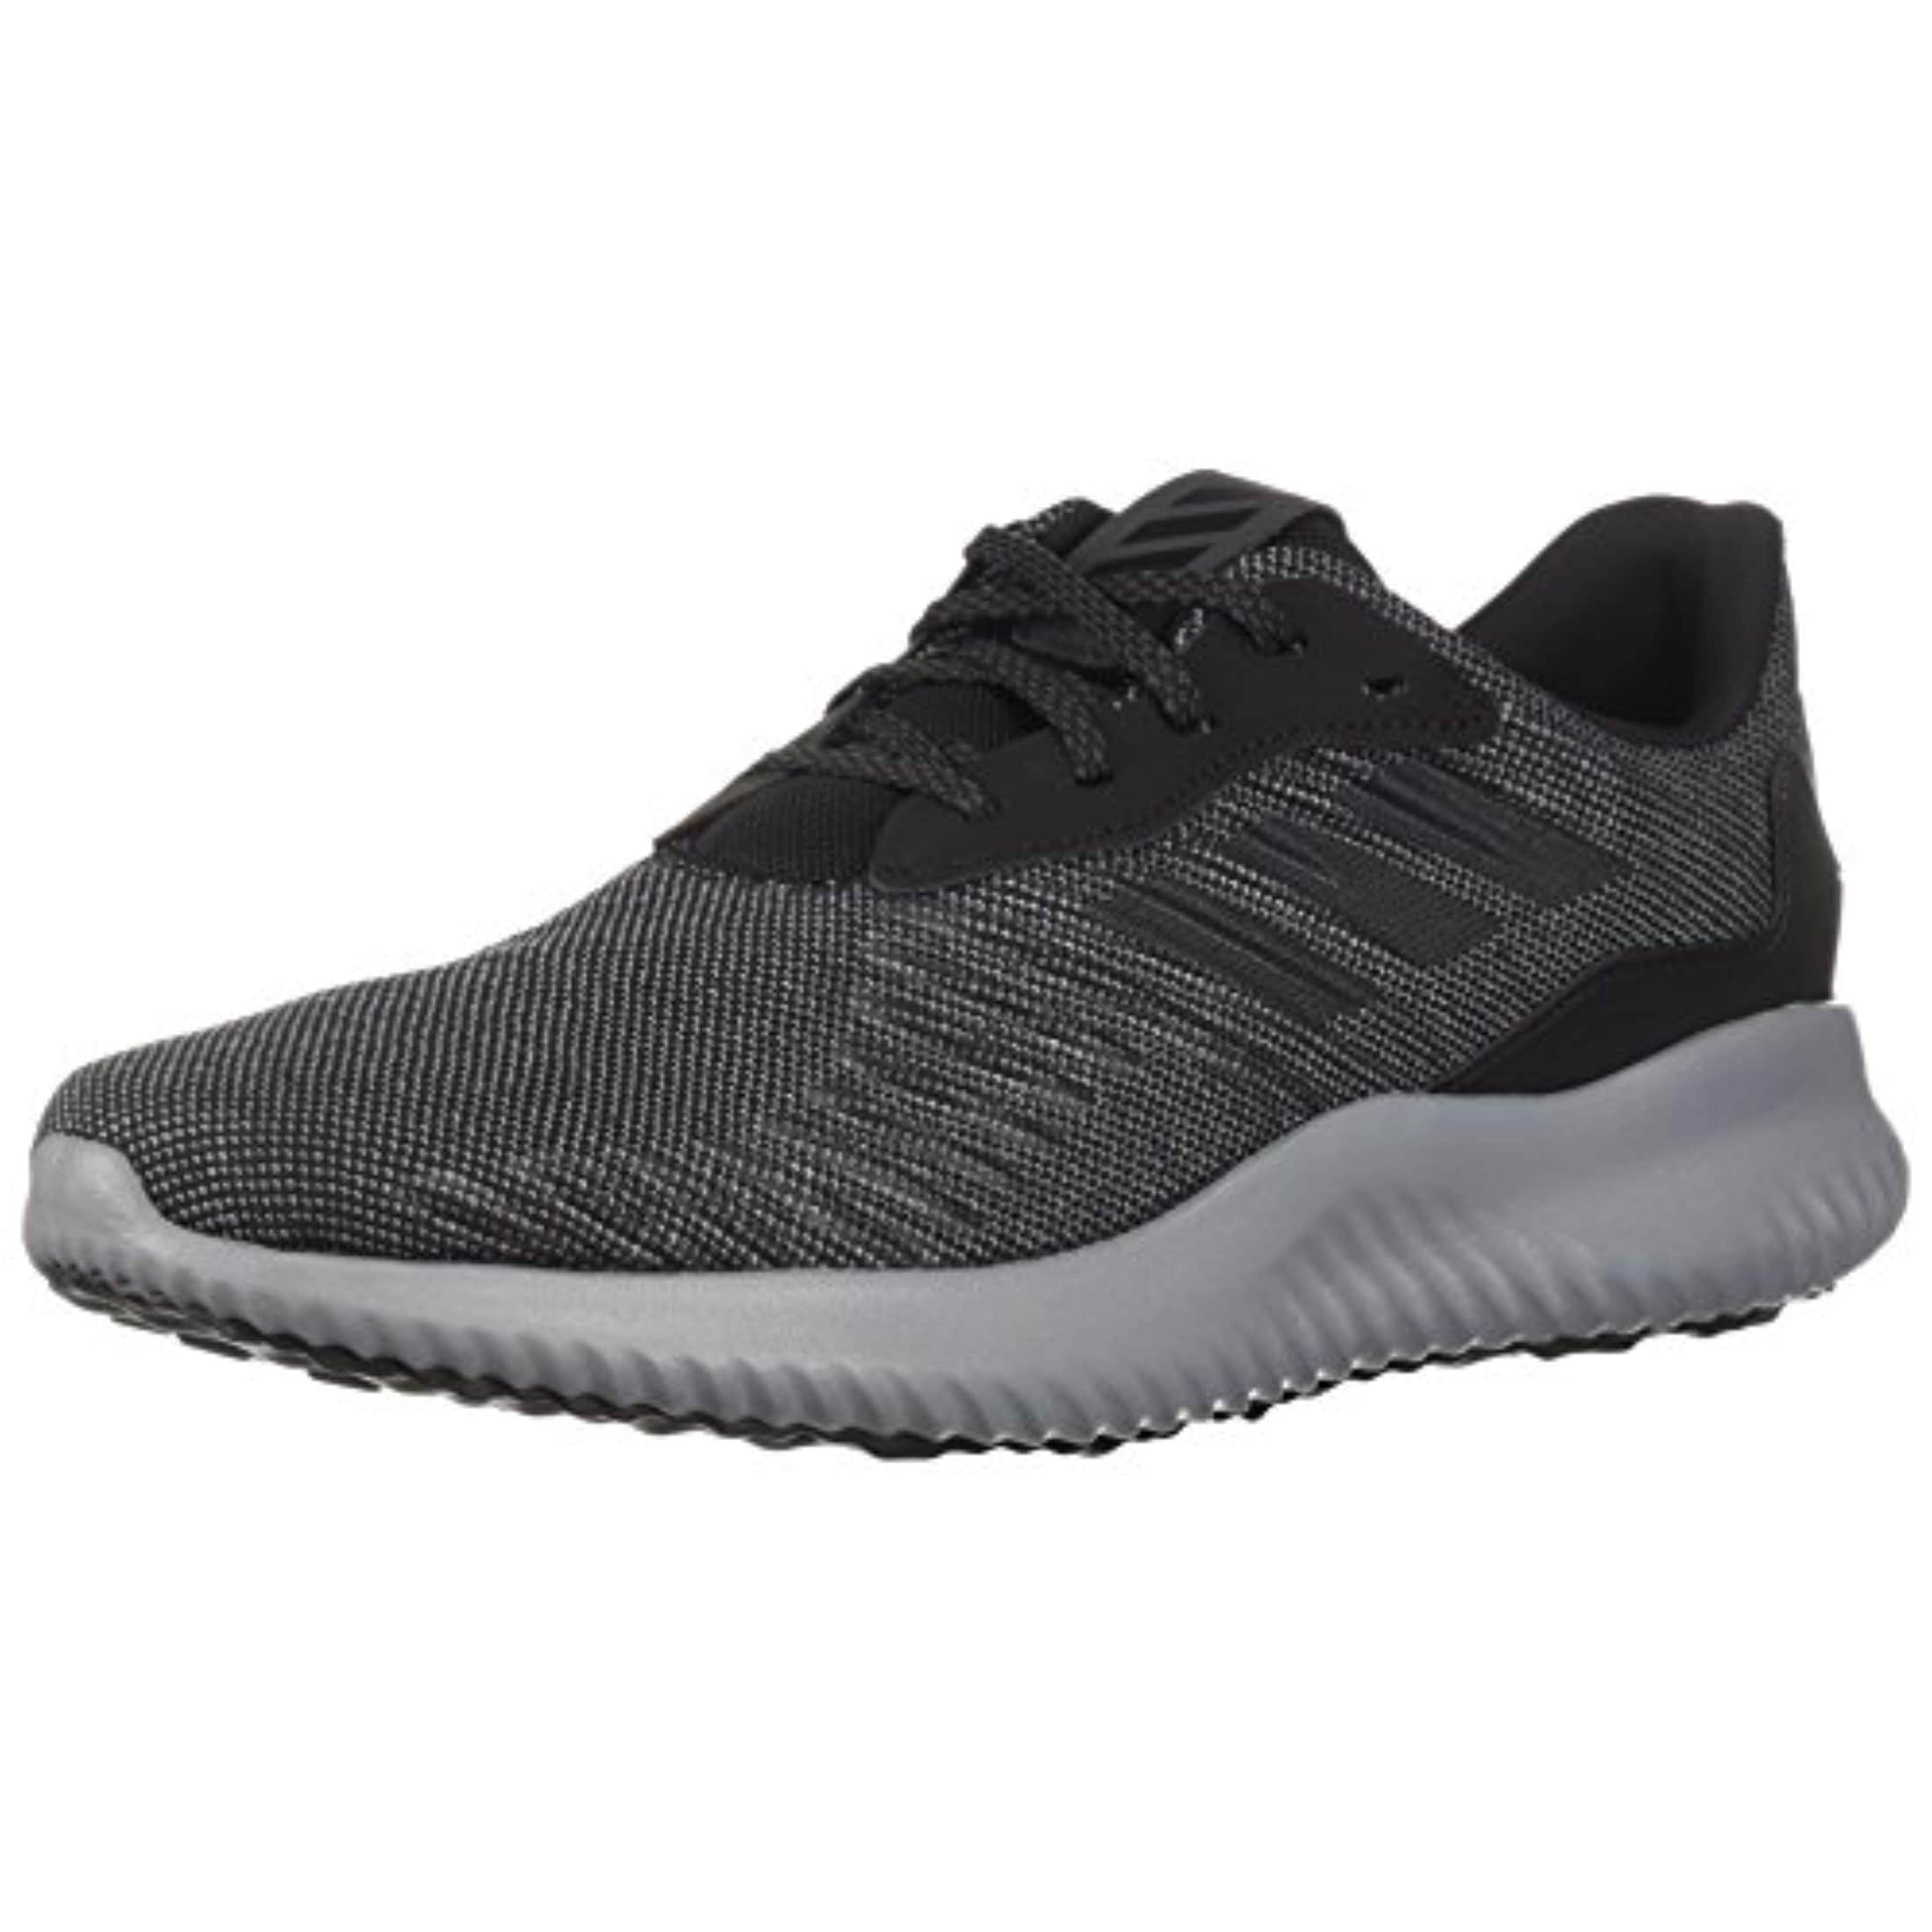 e6b08a6845cd4 Shop Adidas Men s Alphabounce Rc M Running Shoe